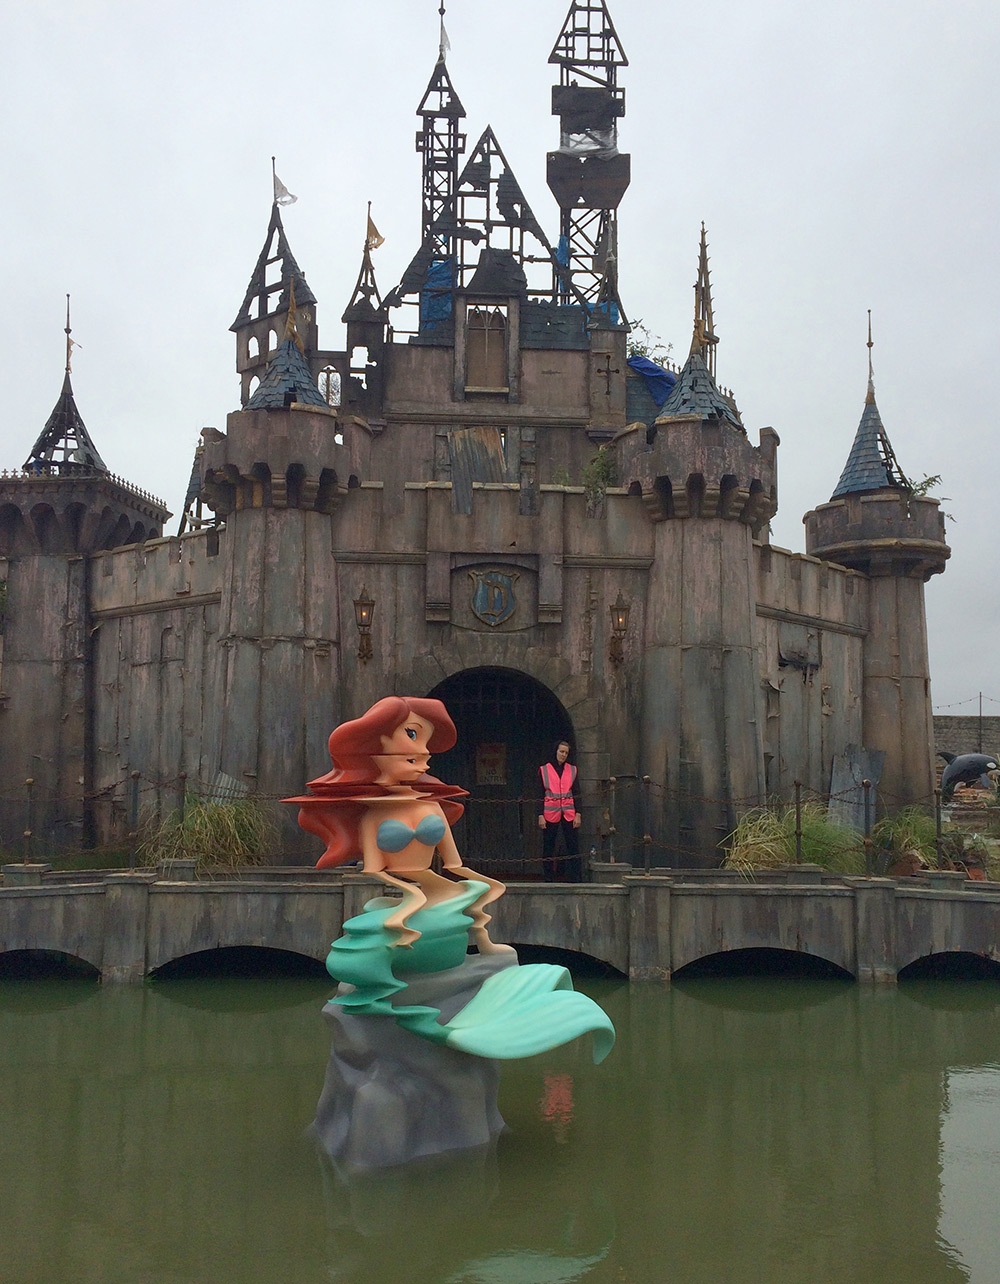 Street-Art-by-Banksy-and-other-artists-in-London-England-Dismaland-2.jpg